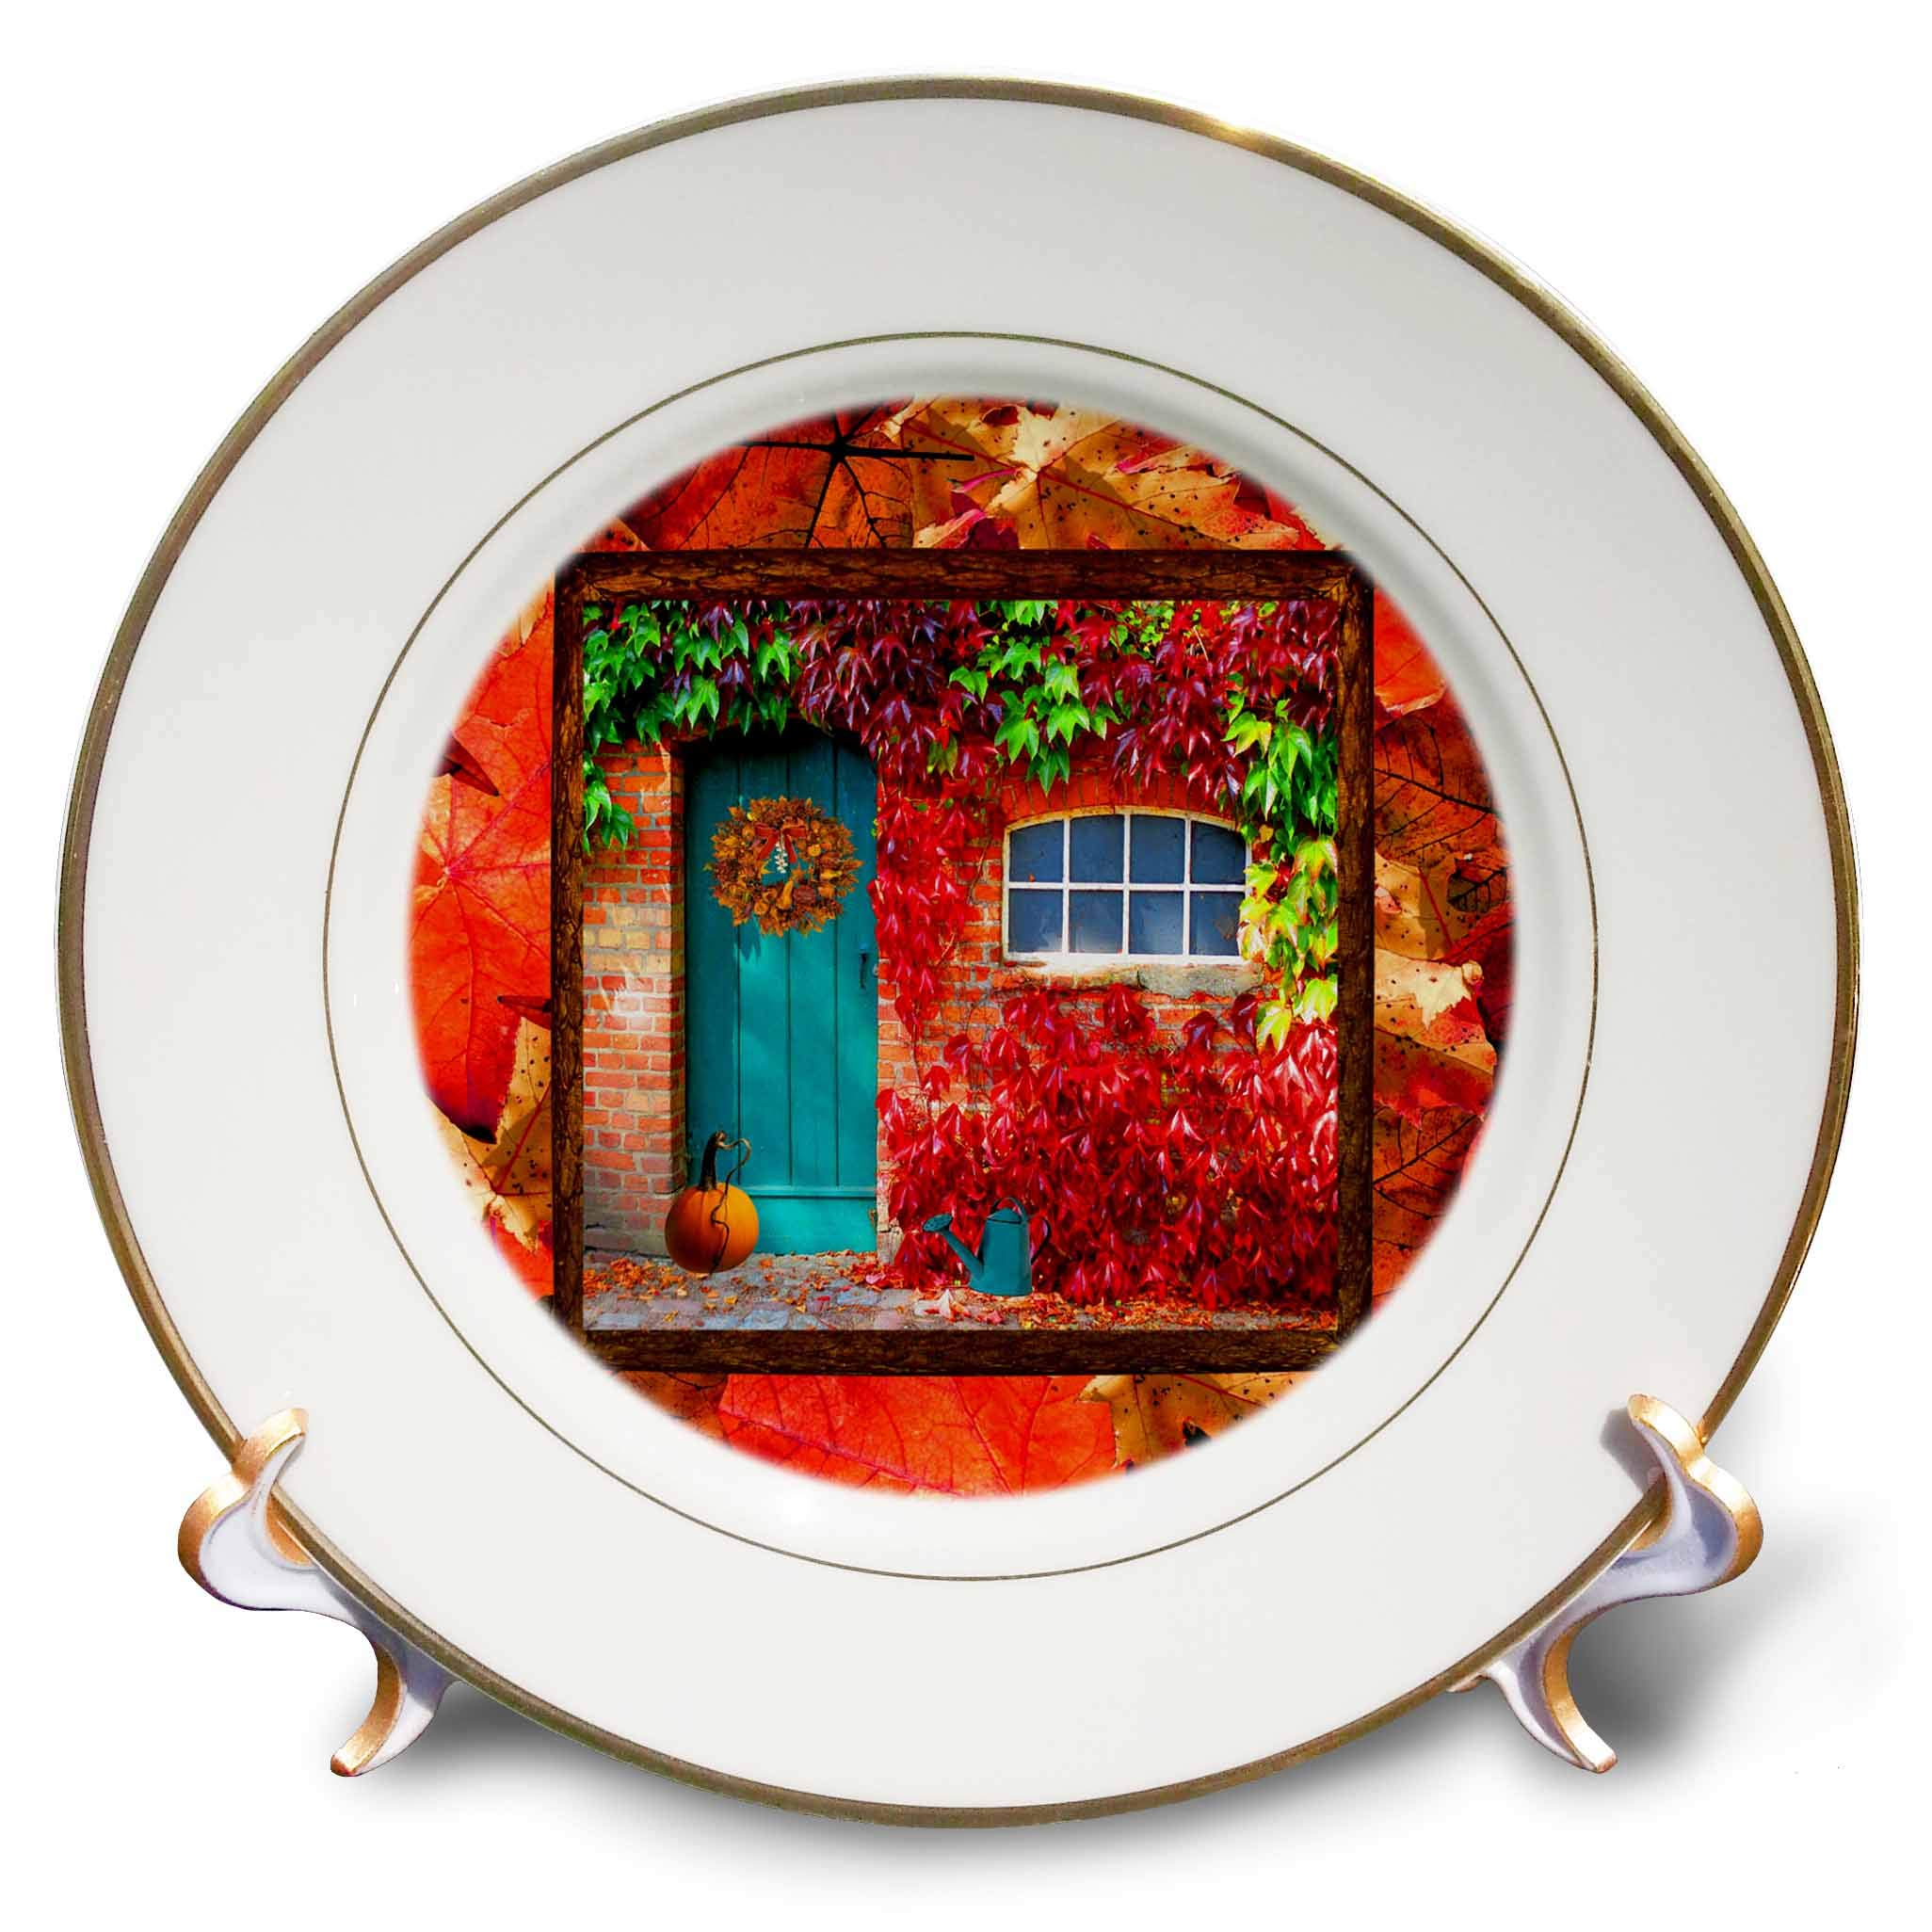 3dRose Beverly Turner Autumn Design - Aqua Door, Pumpkin, Watering Can, Window with Leaves, Autumn Colors - 8 inch Porcelain Plate (cp_290396_1)